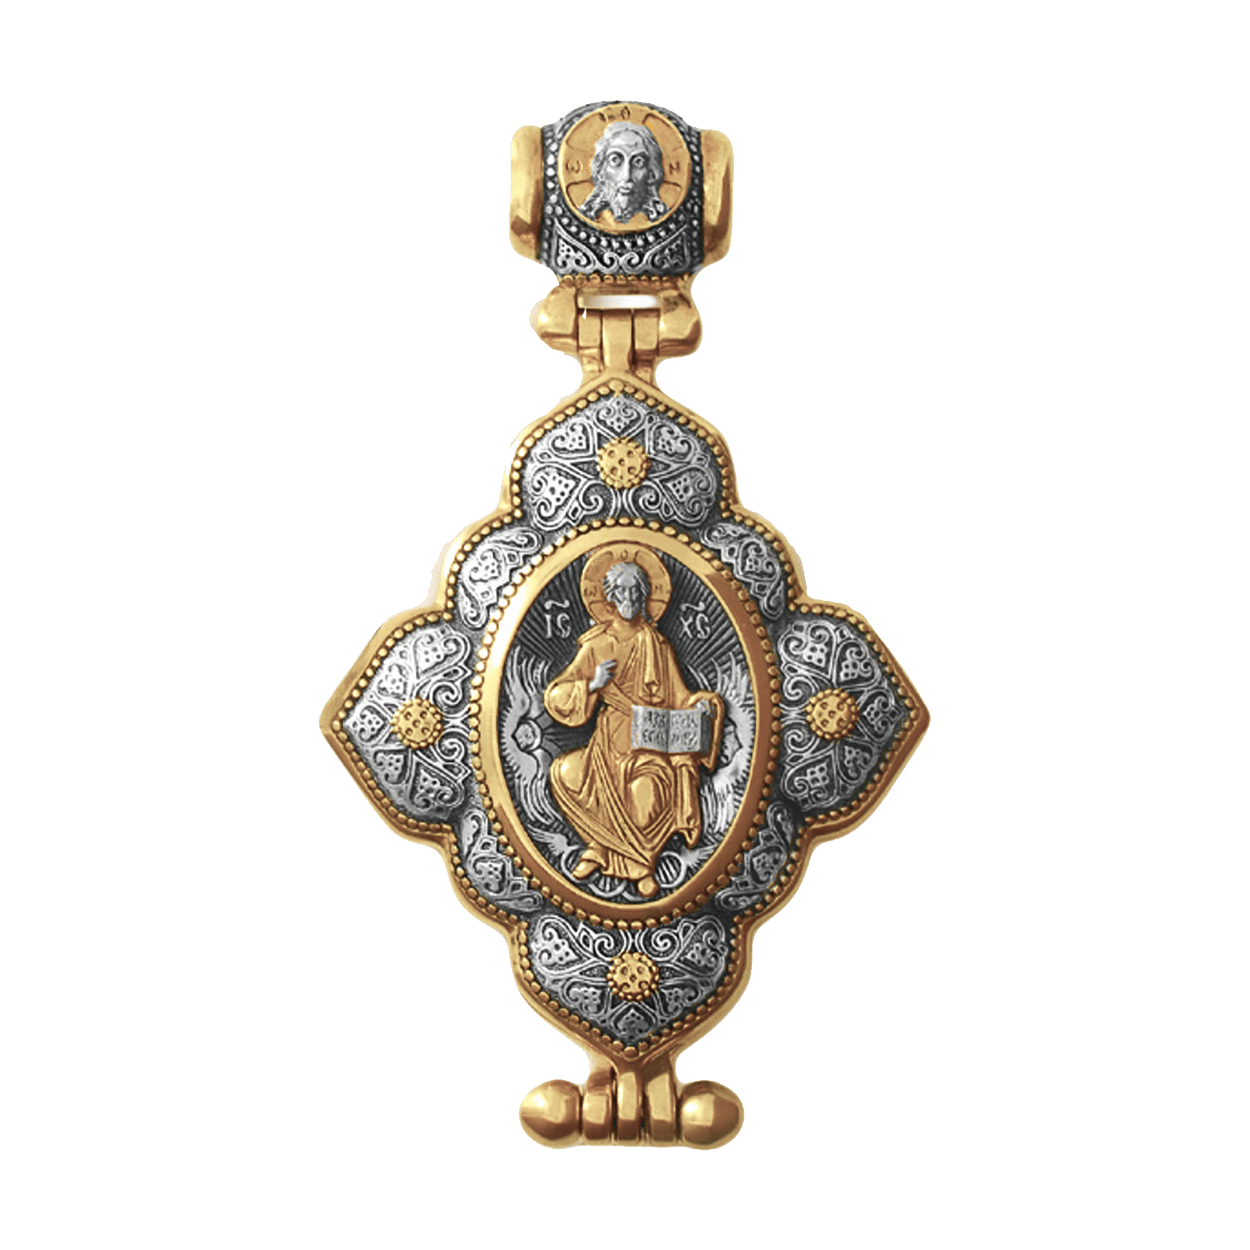 Russian-Orthodox-silver-Reliquary-cross-pendant-OUR-SAVIOR-IN-HIS-GLORY-Master-Jeweler-Fedorov